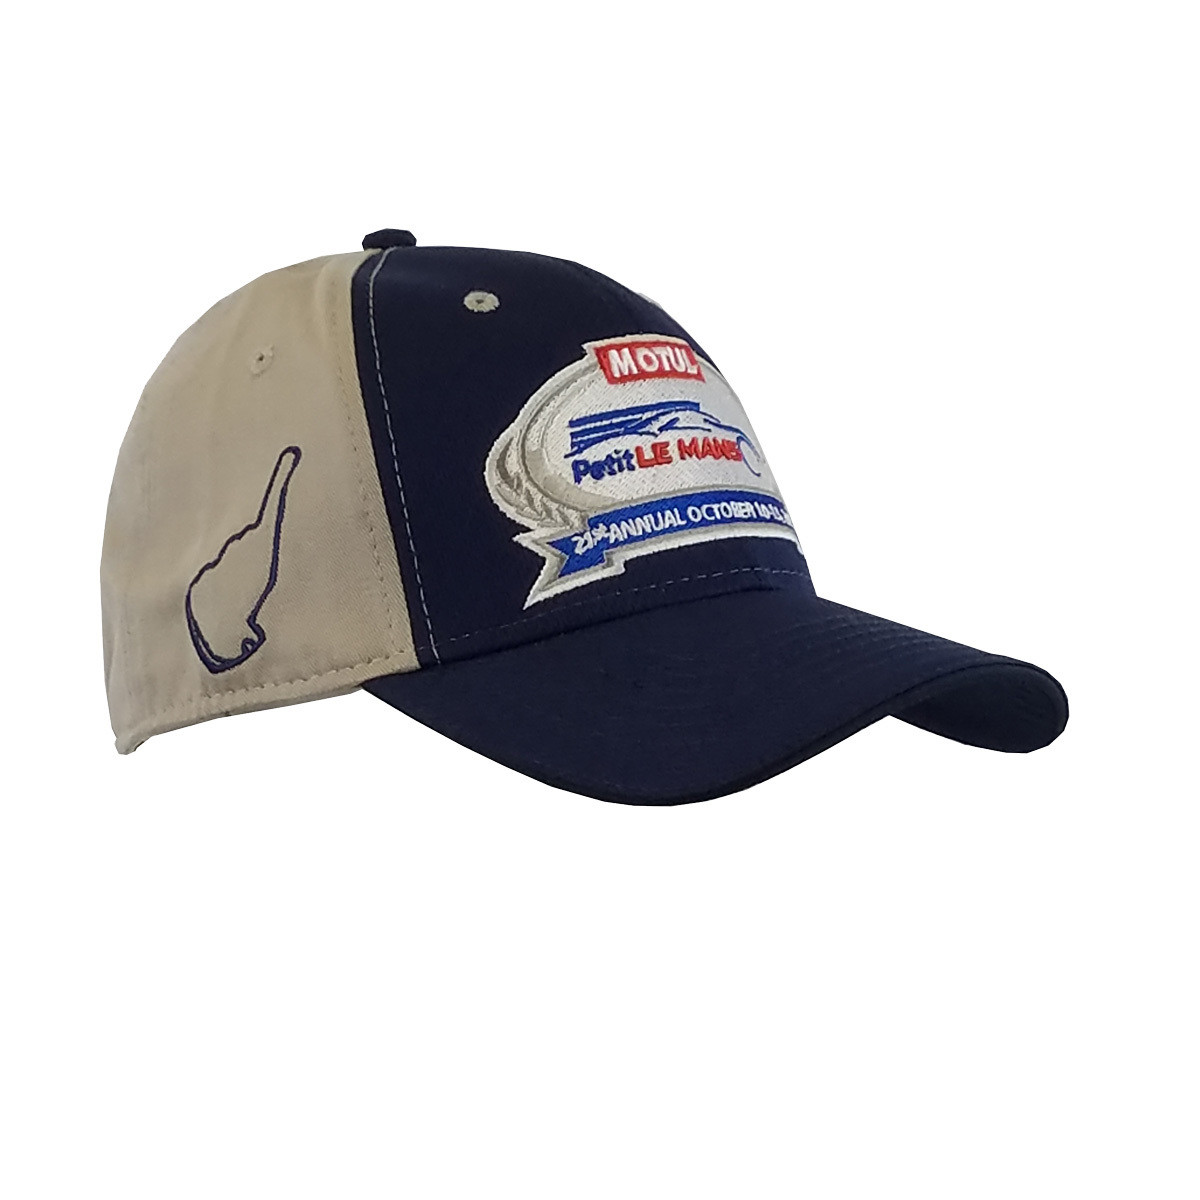 2018 MPLM Event Hat- Navy